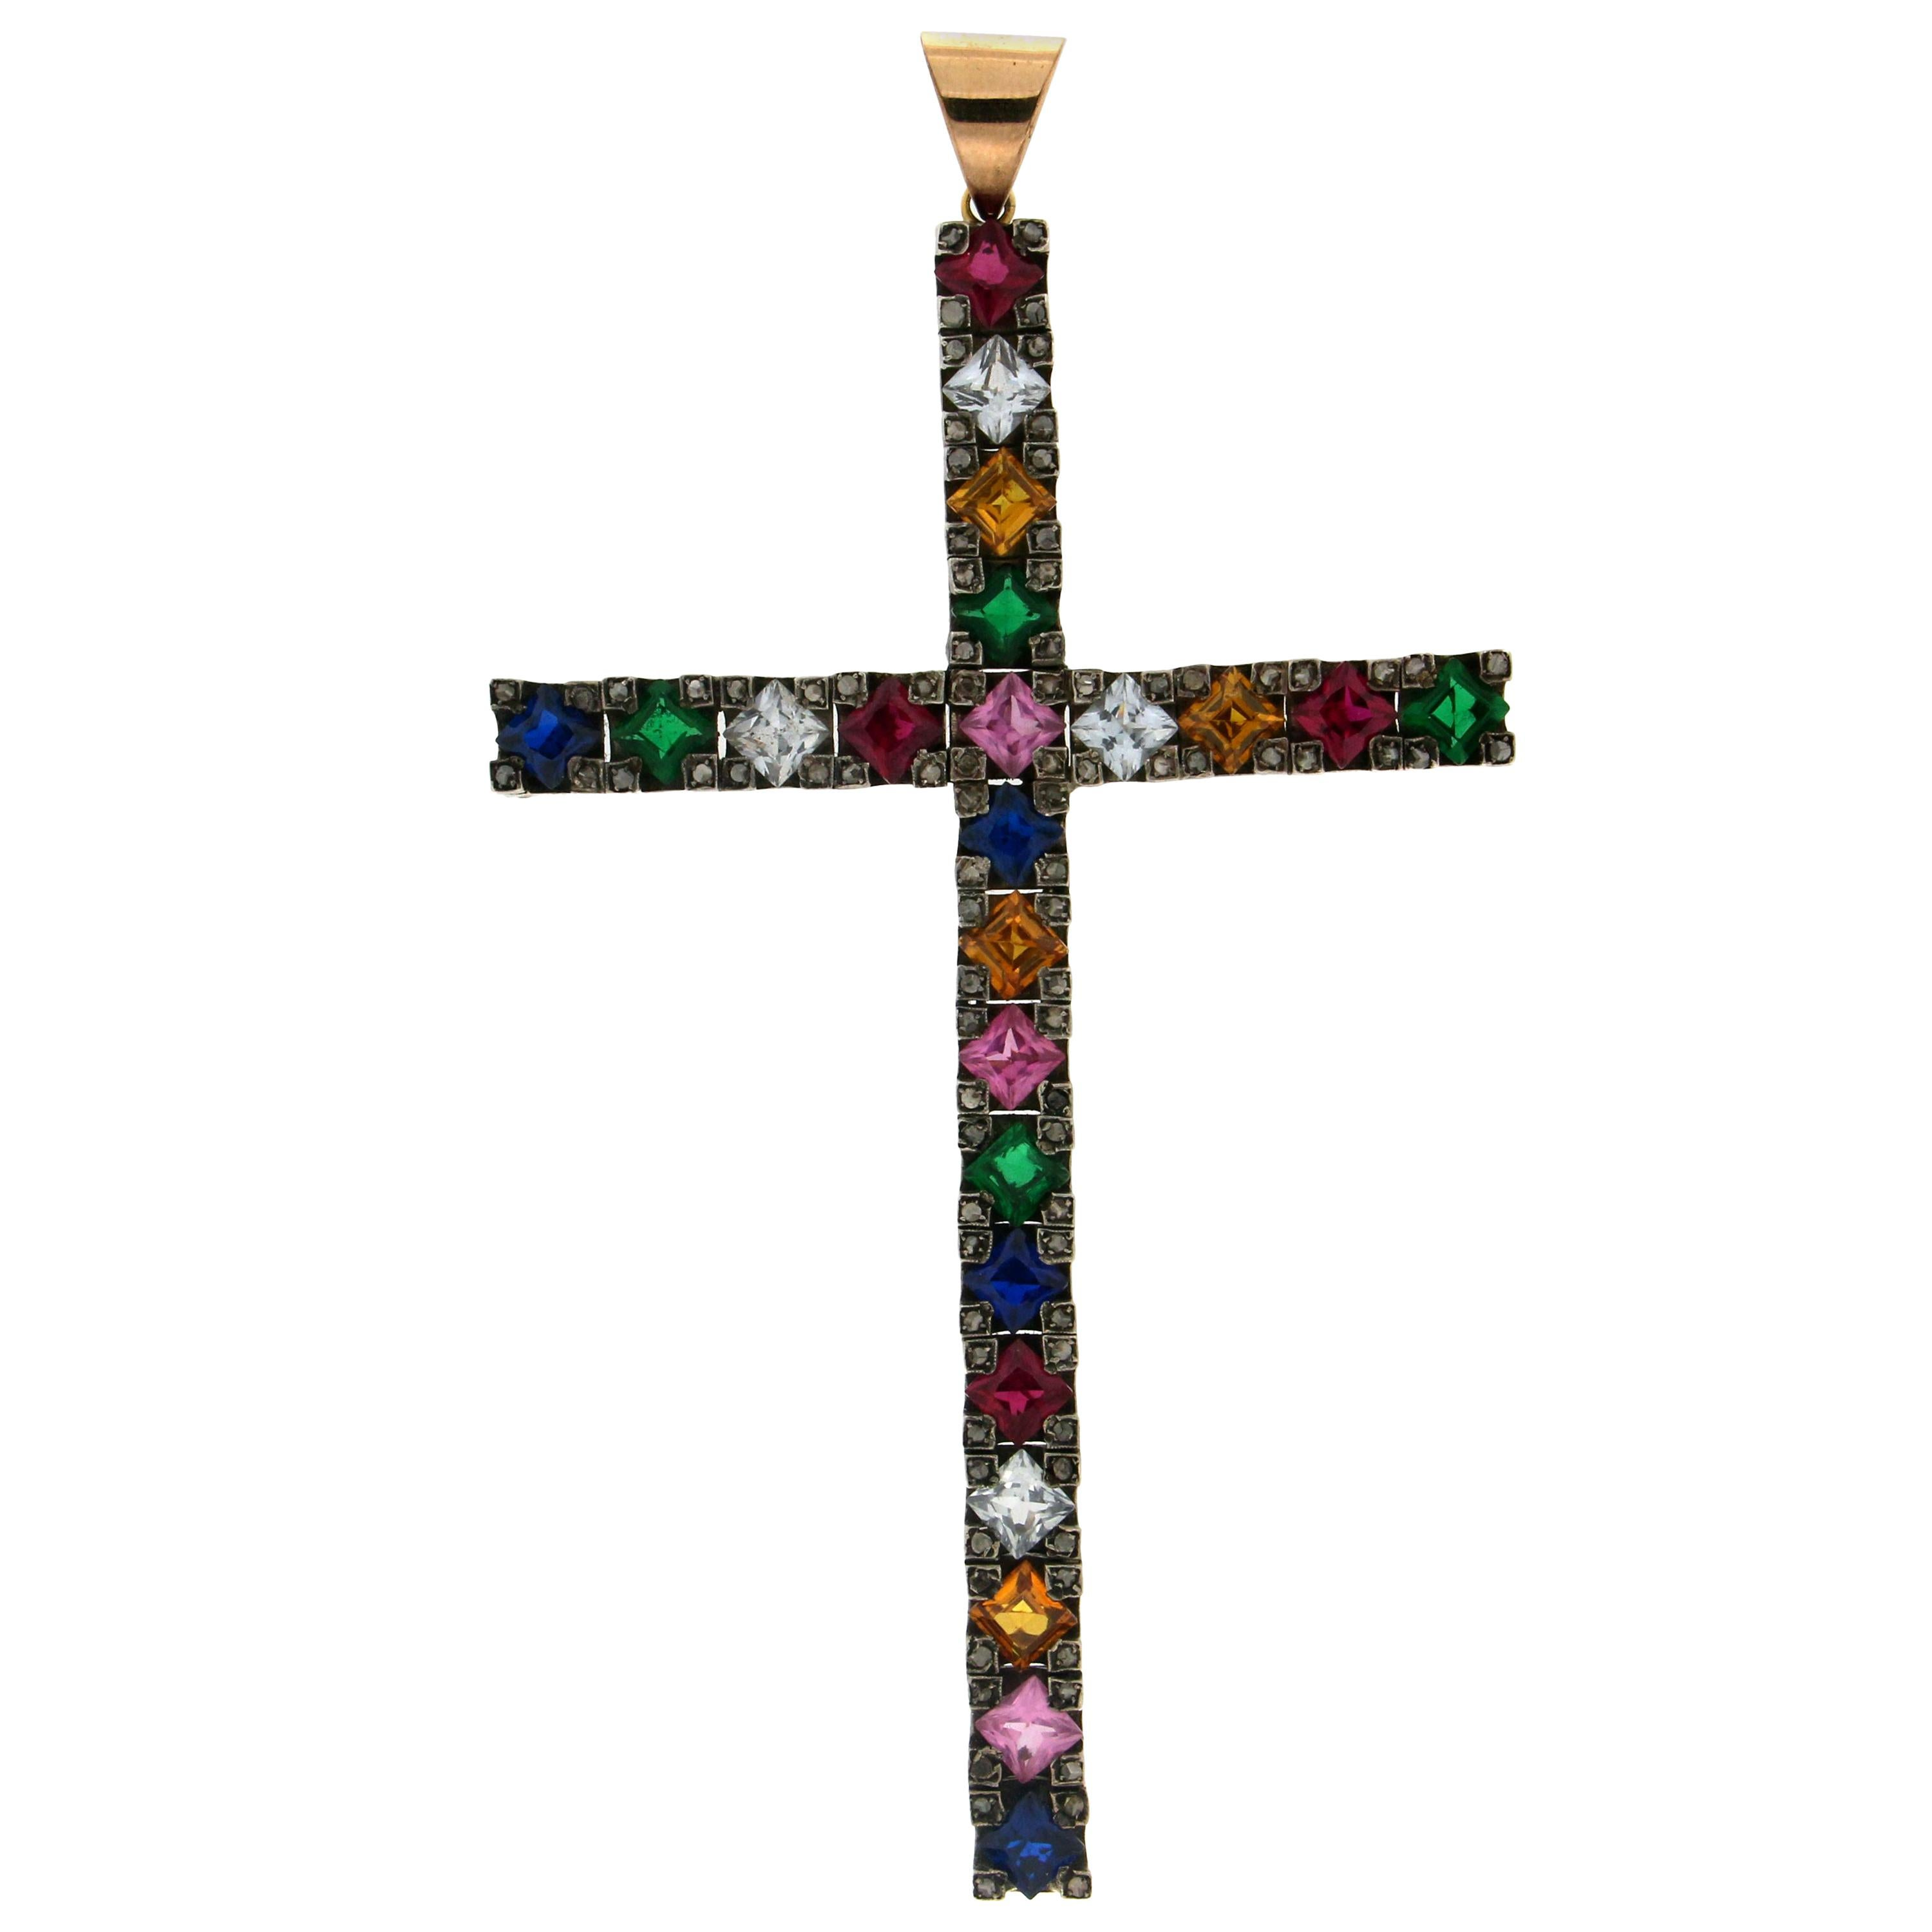 Handcraft Cross 14 Karat Gold Diamonds Semiprecious Stones Pendant Necklace